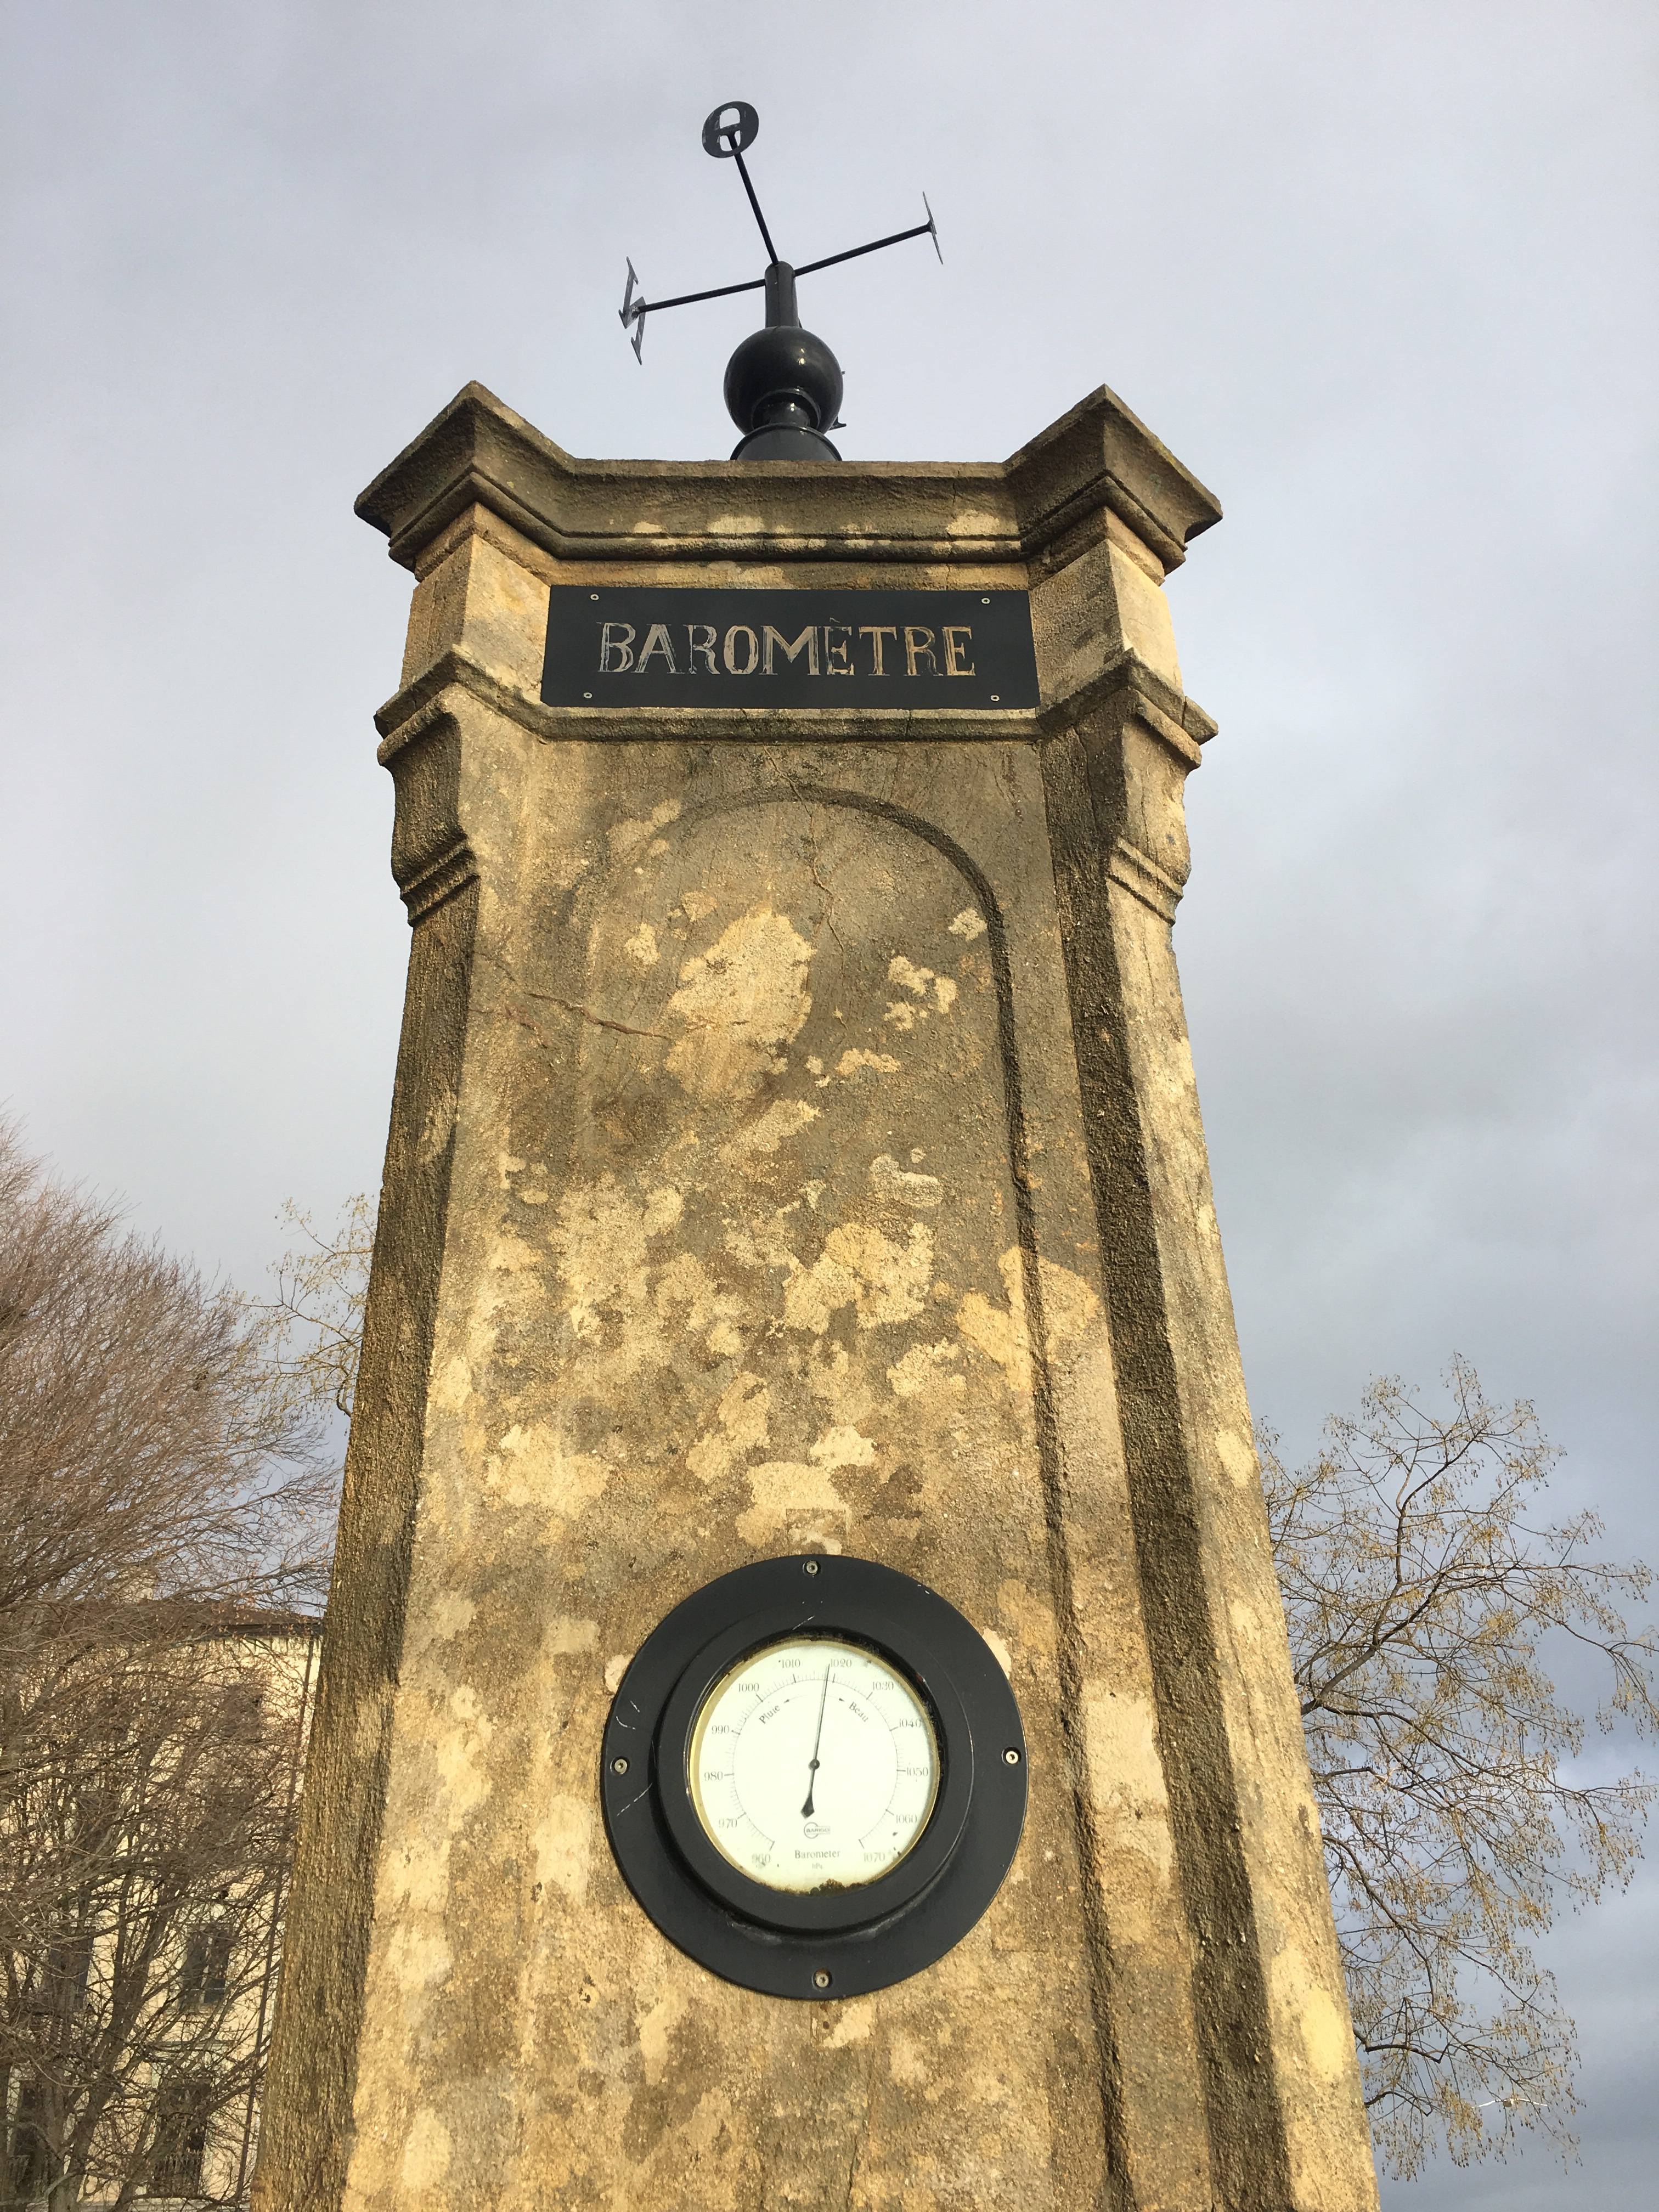 Neuchatel - a restored barometer measures pressure and predicts the weather, lake shore